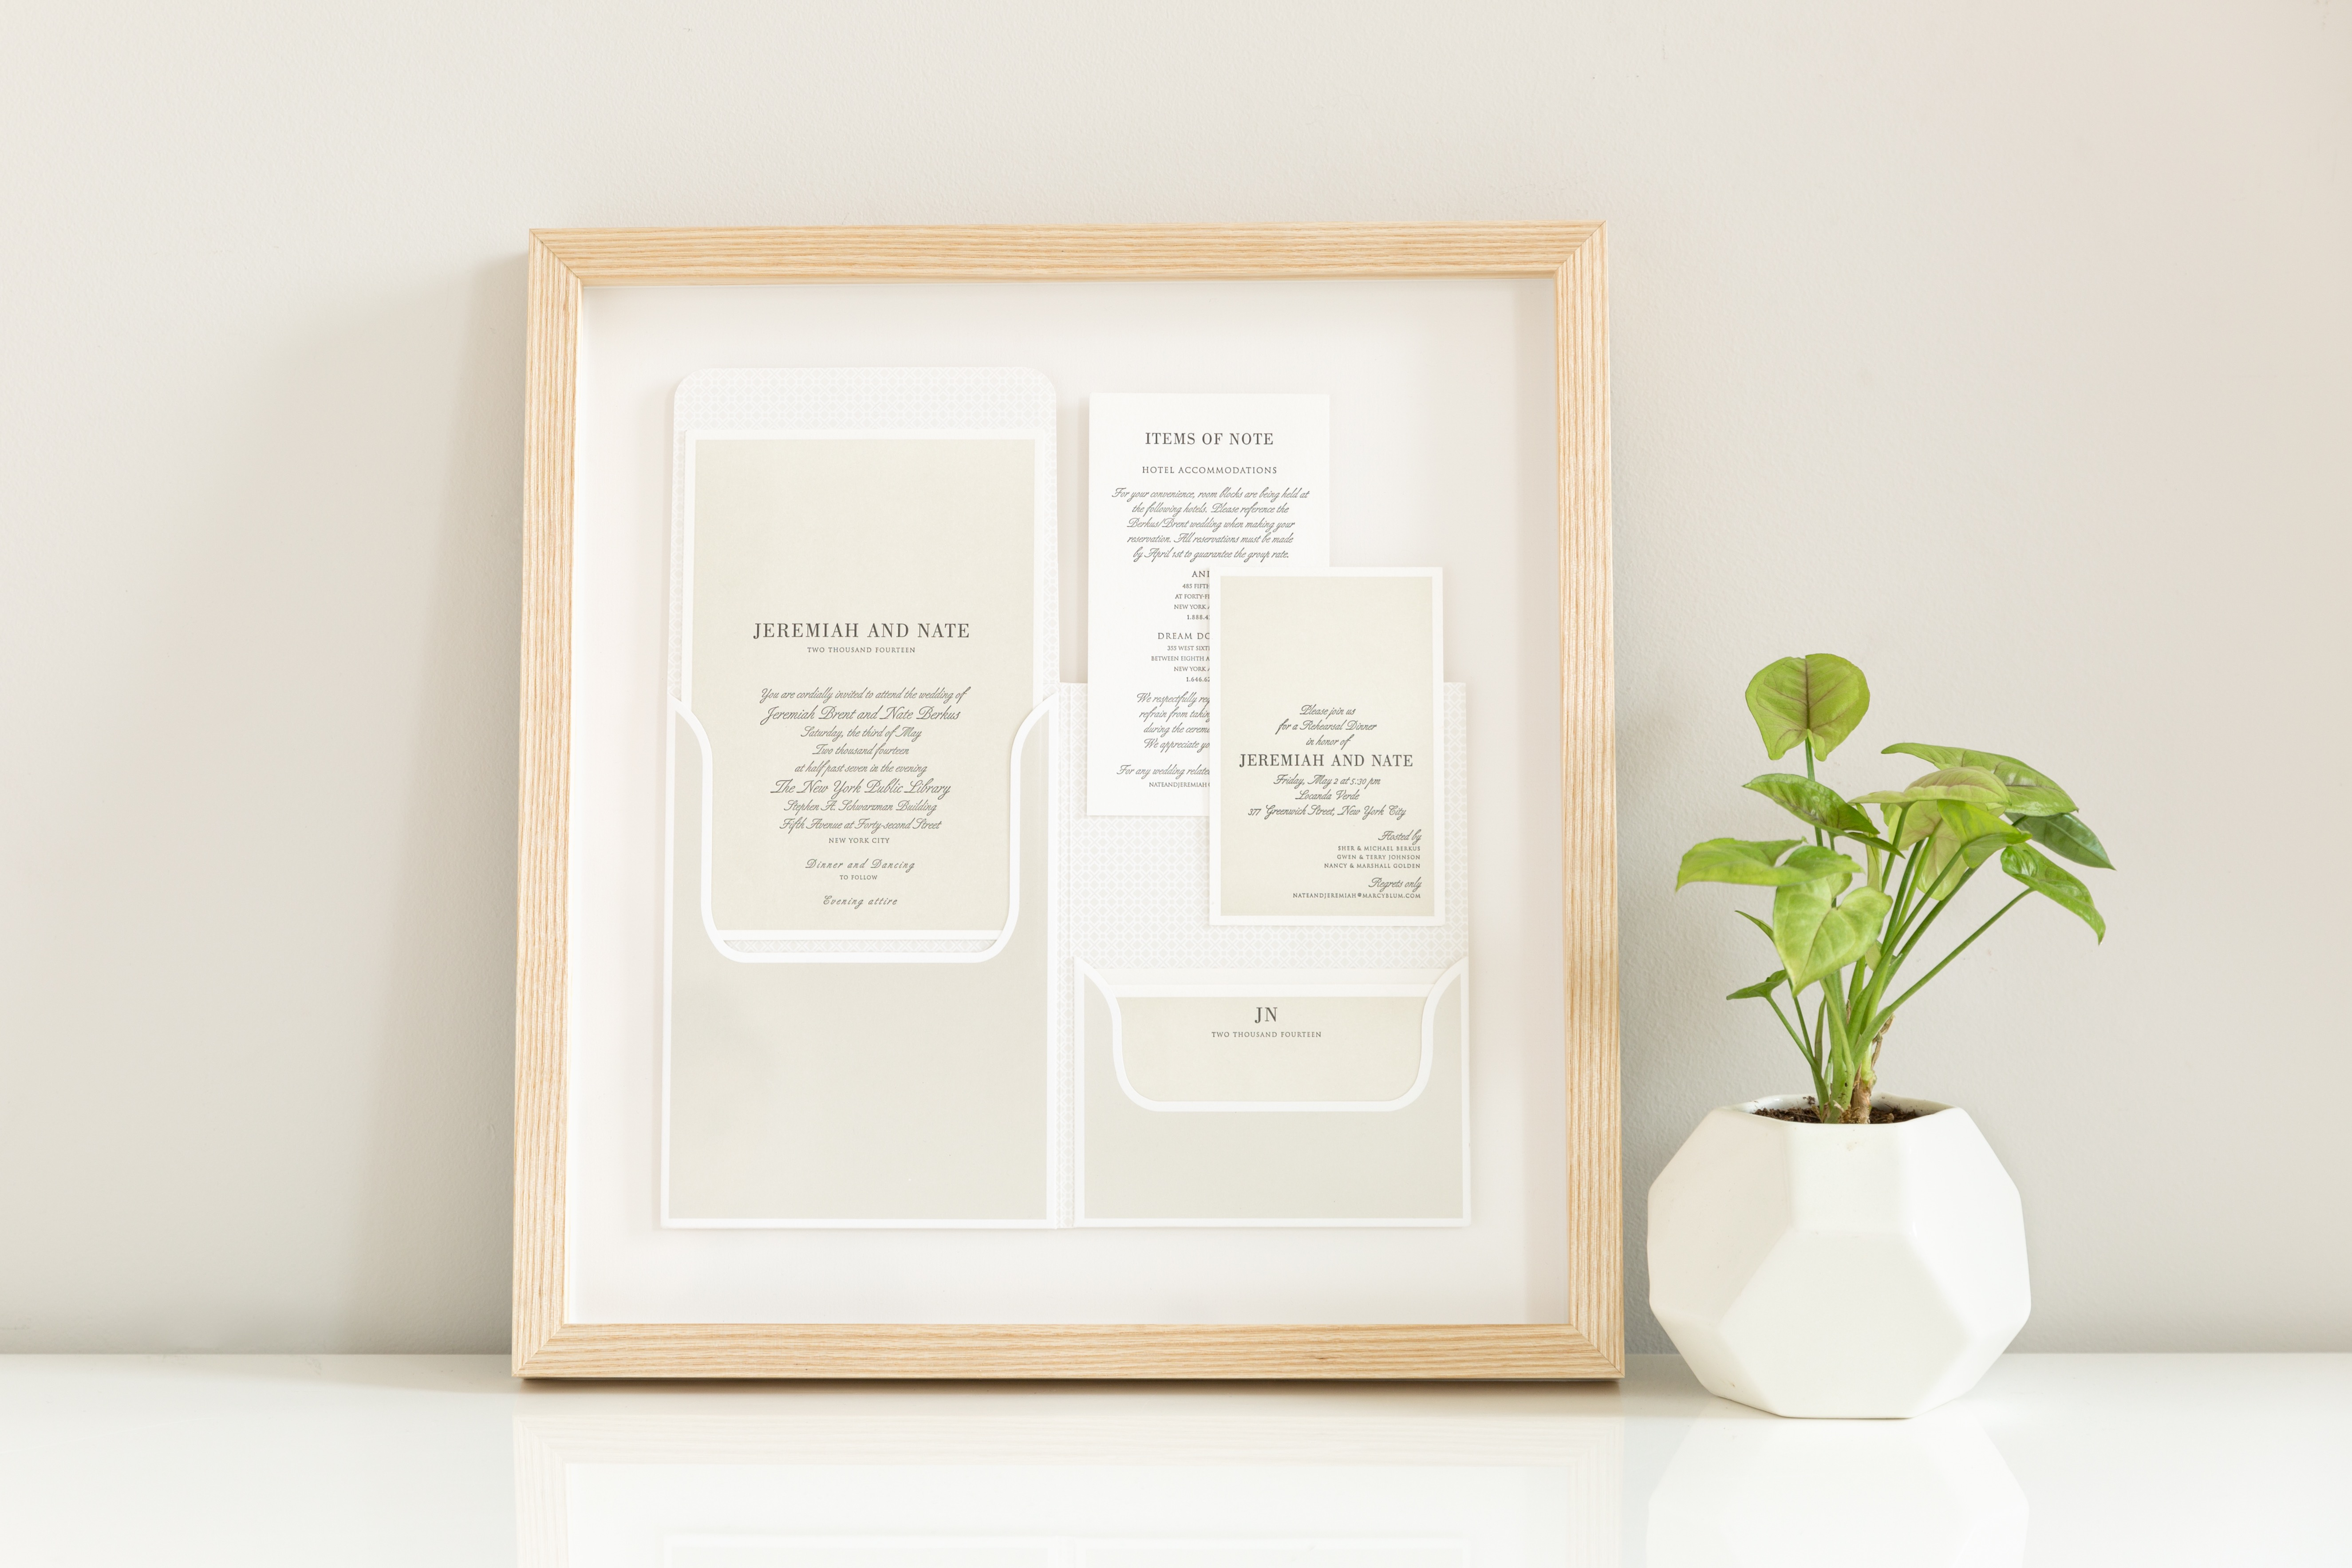 Once You Ve Decided How D Like To Mat And Mount Your Invitation Re Ready Pick A Frame Our Newport Richmond Frames Are Great For Clic